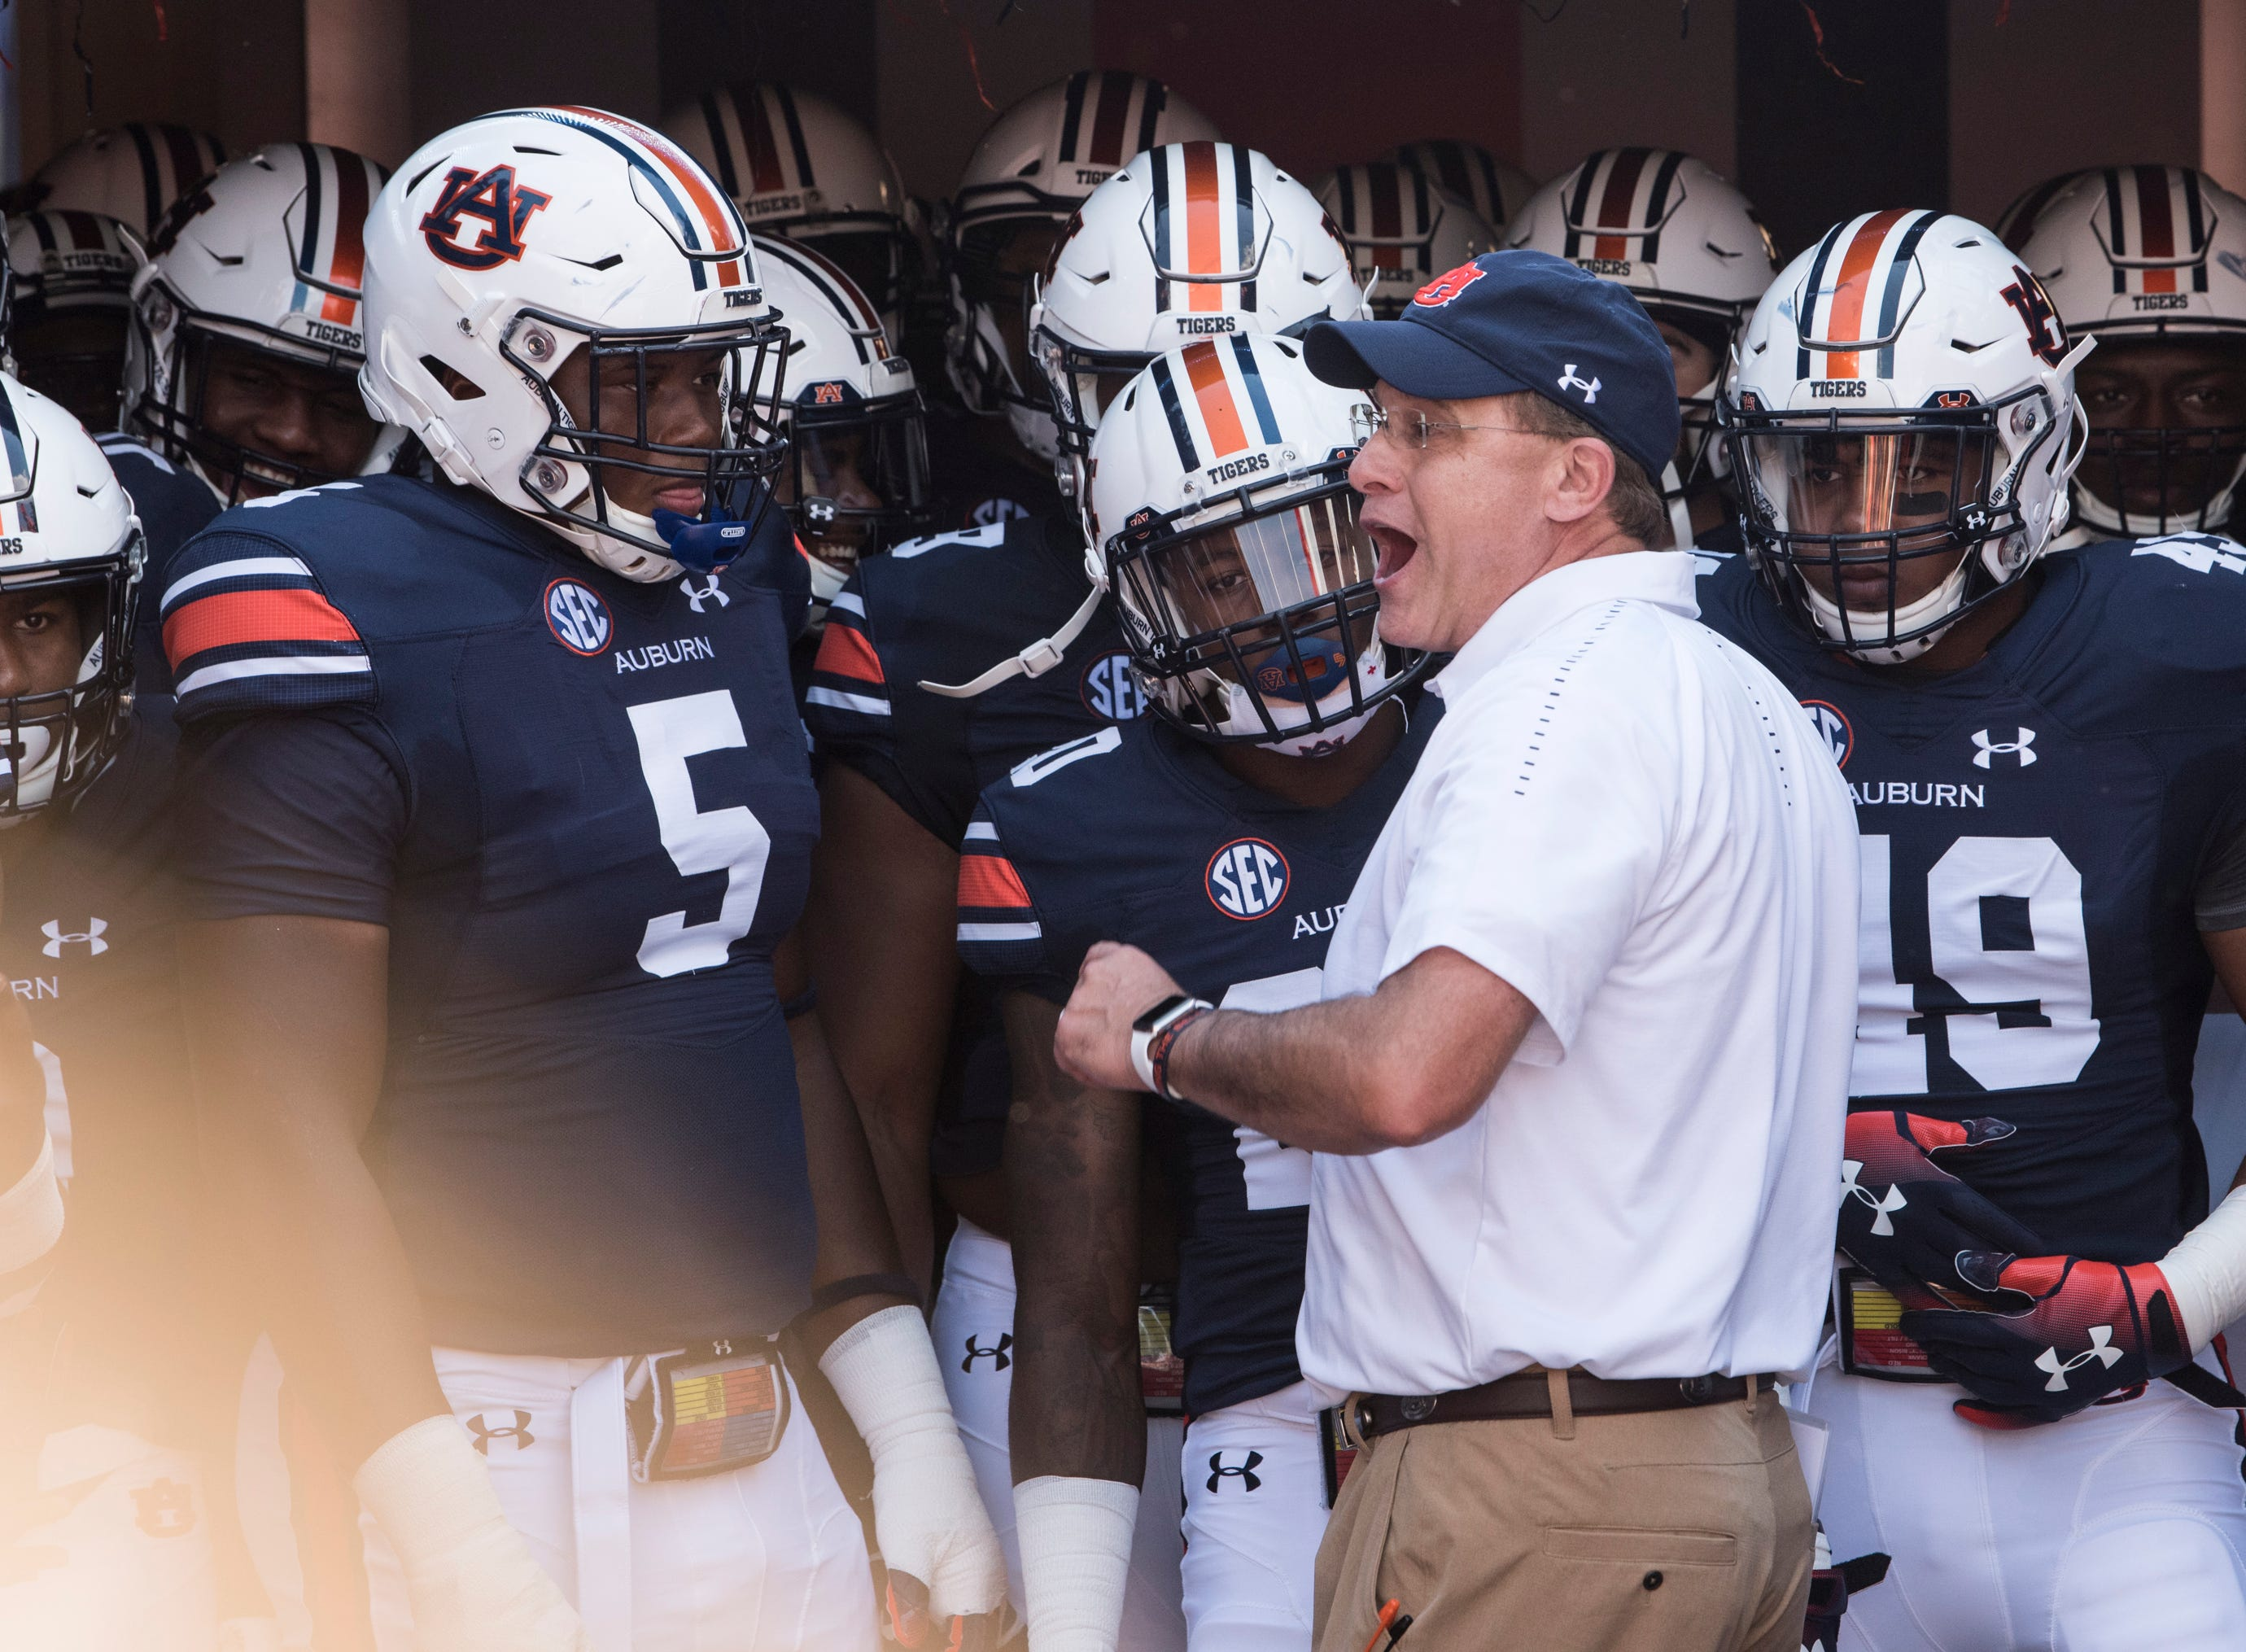 Auburn head coach Gus Malzahn leads his team out before taking on LSU at Jordan-Hare Stadium in Auburn, Ala., on Saturday, Sept. 15, 2018. LSU defeated Auburn 22-21.